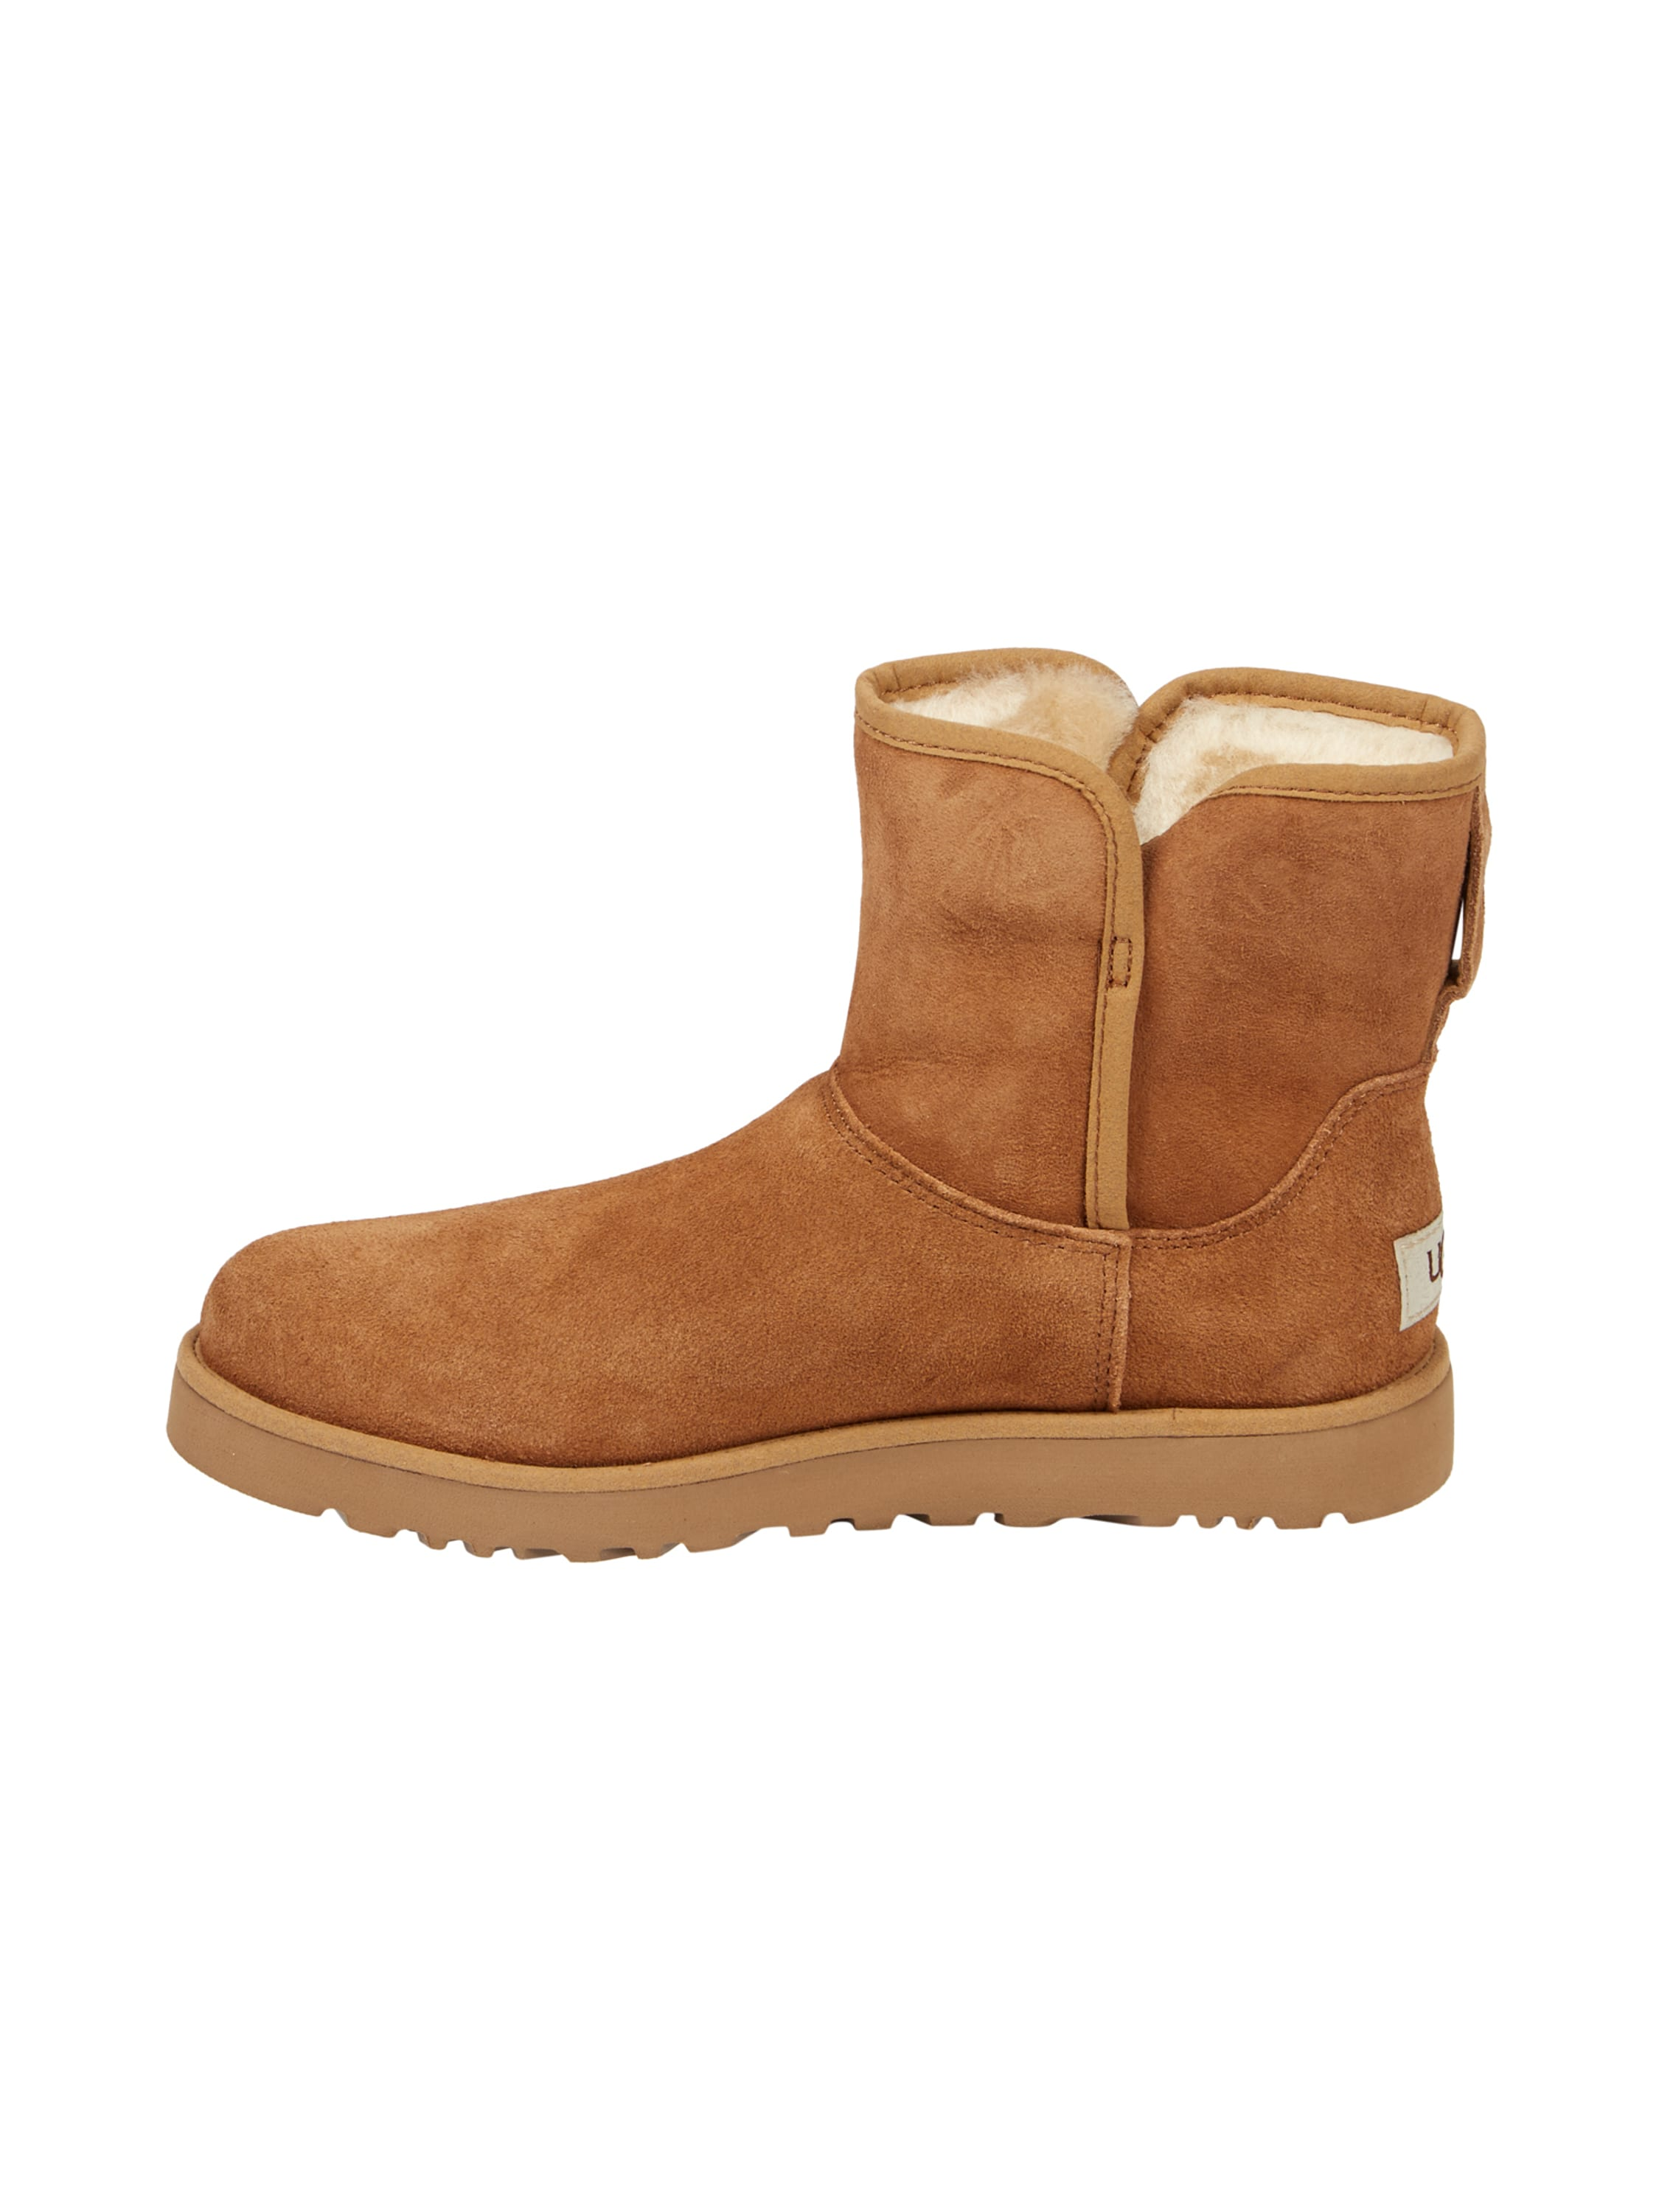 ugg australia usa outlet